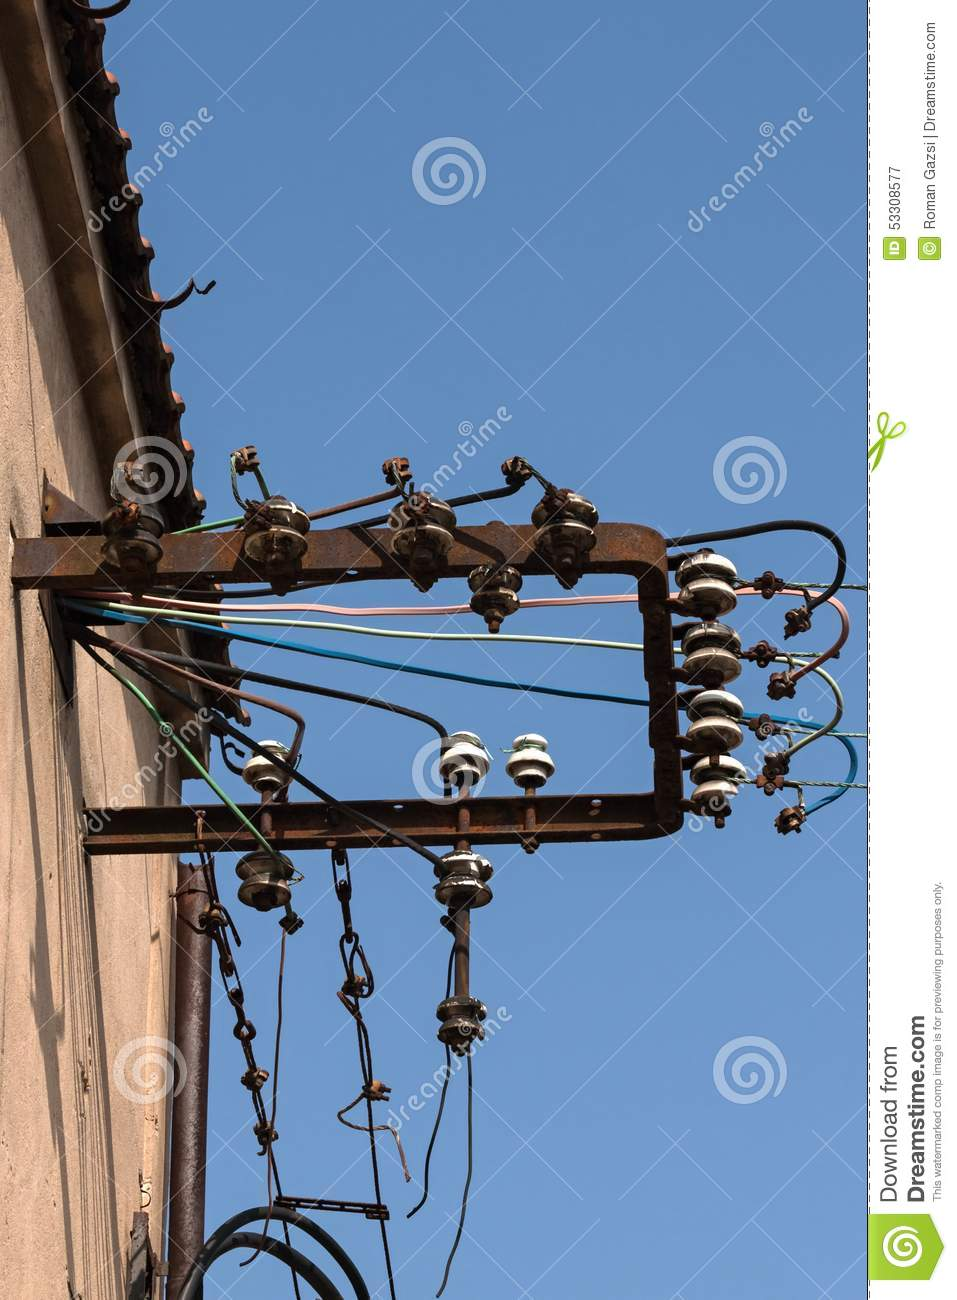 Steel Frame And Electrical Insulators Stock Image Image Of Blue